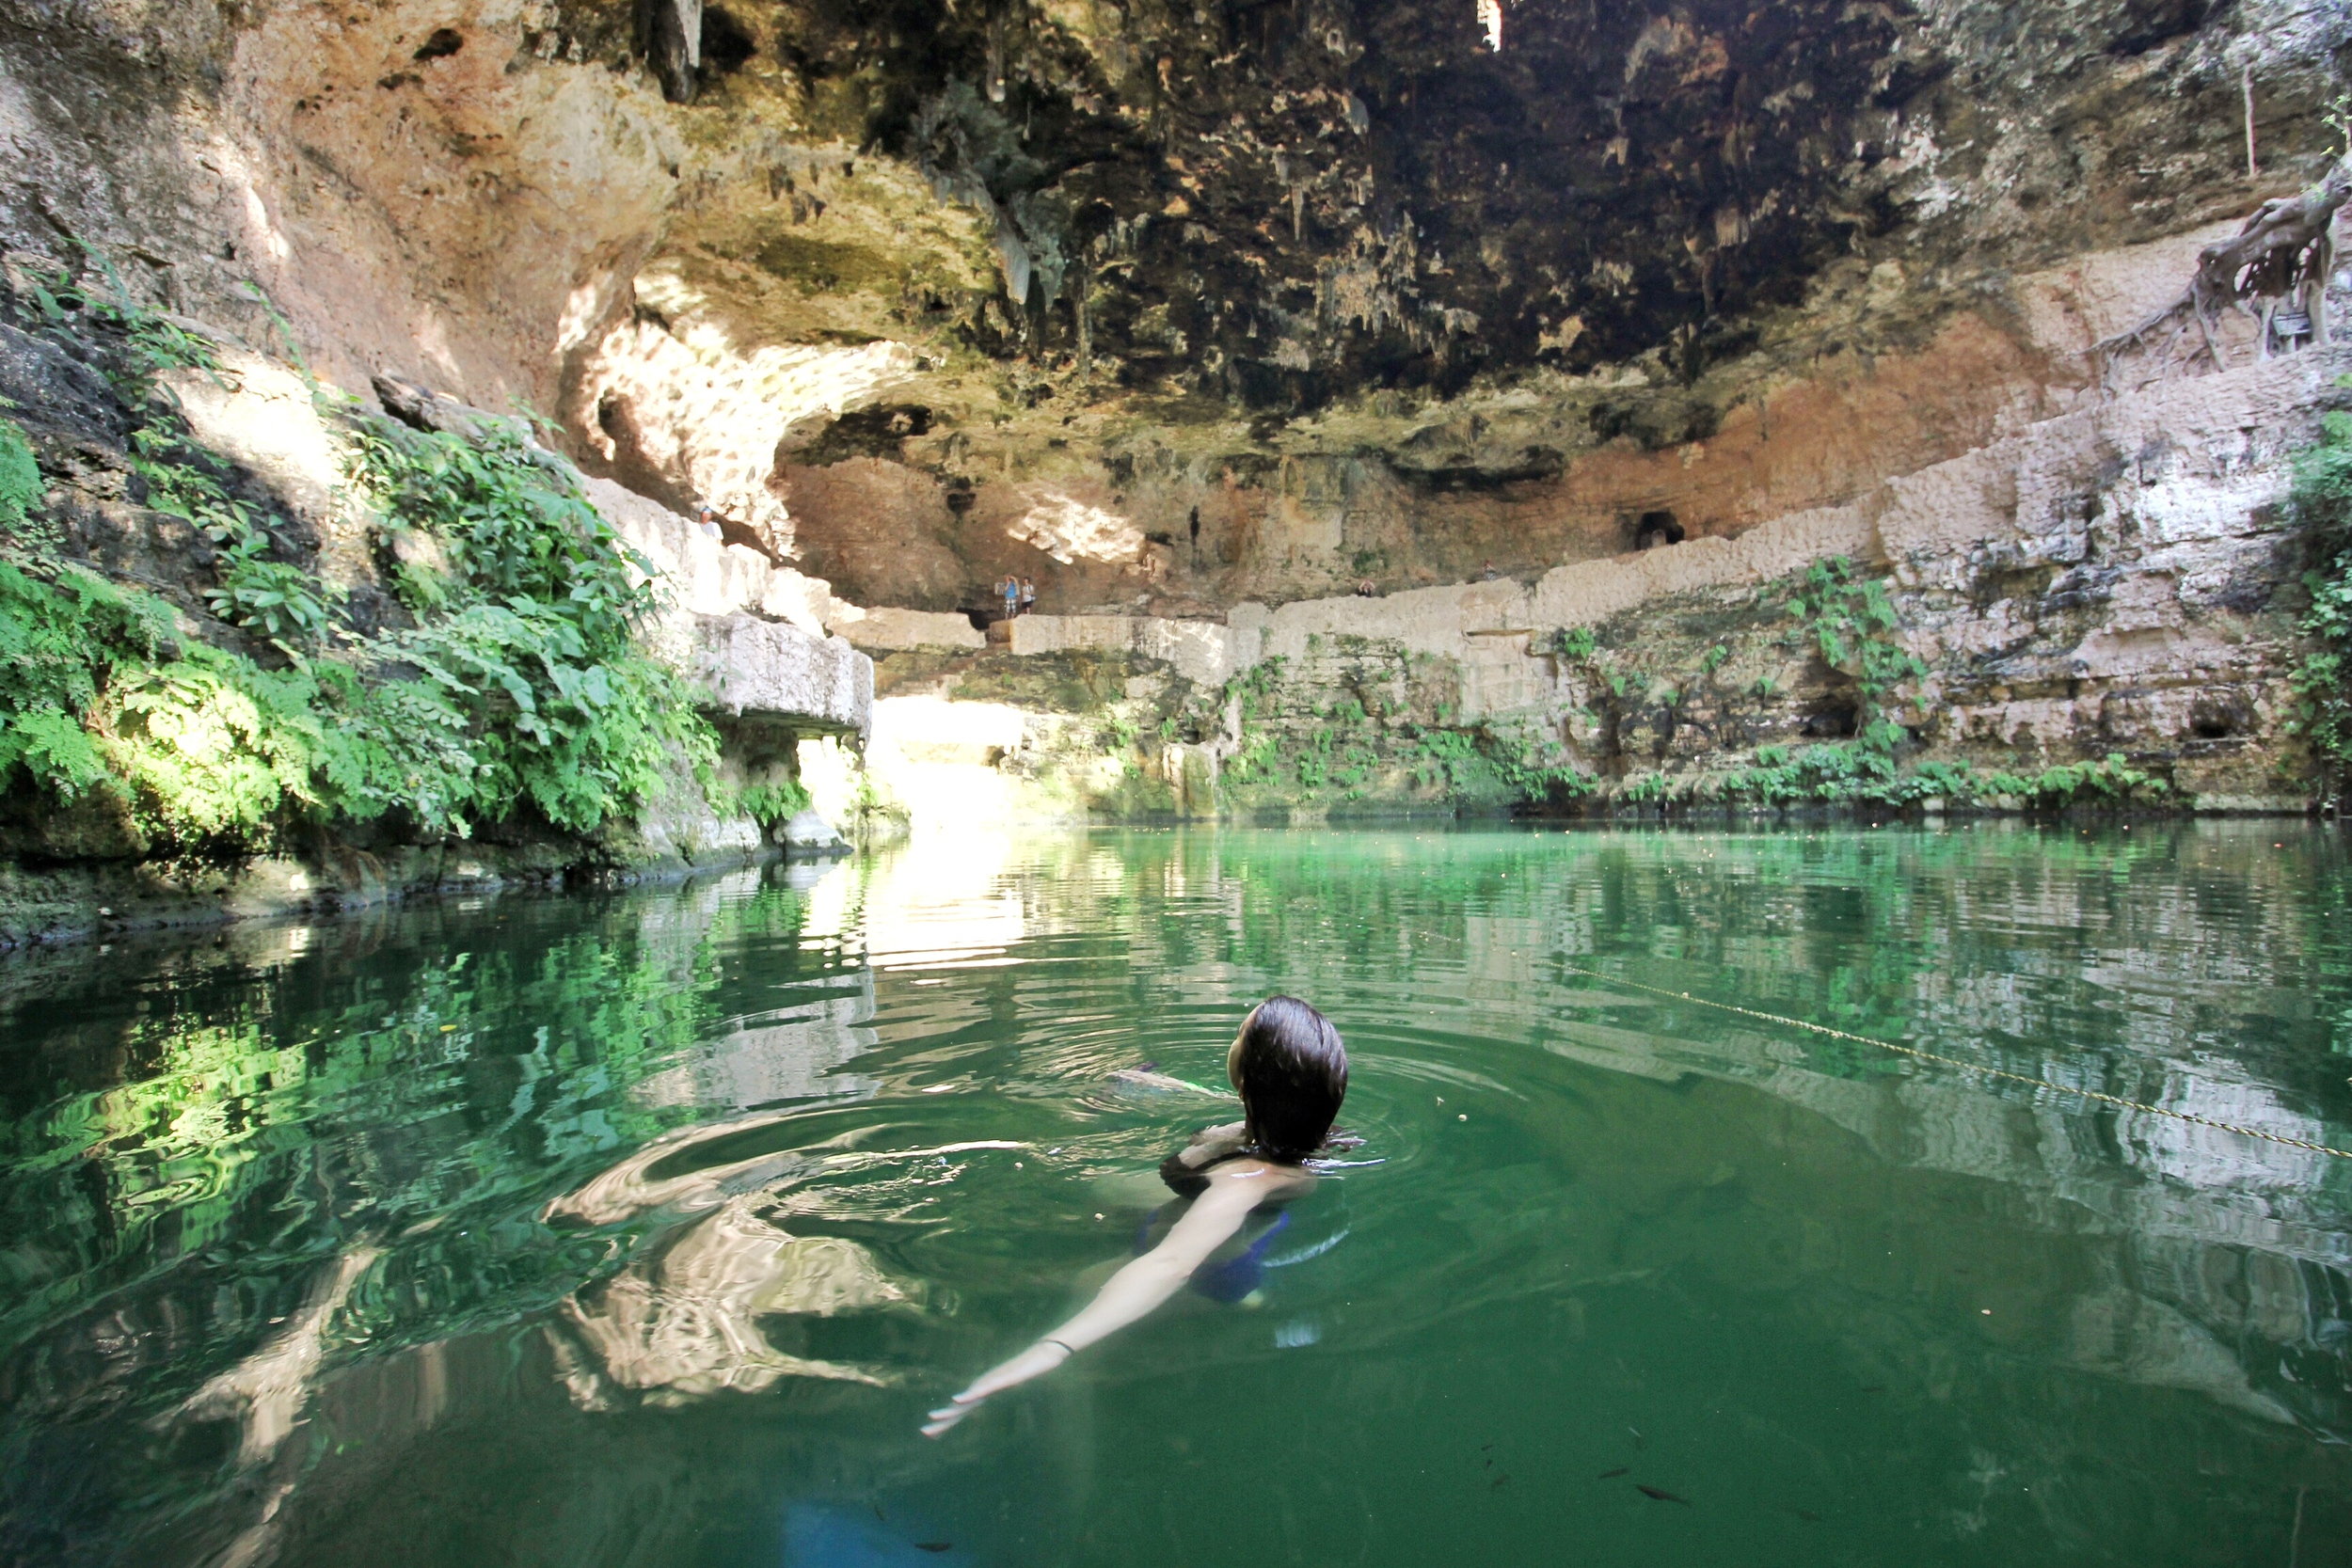 Rachel swimming in Cenote Zaci, Valladolid